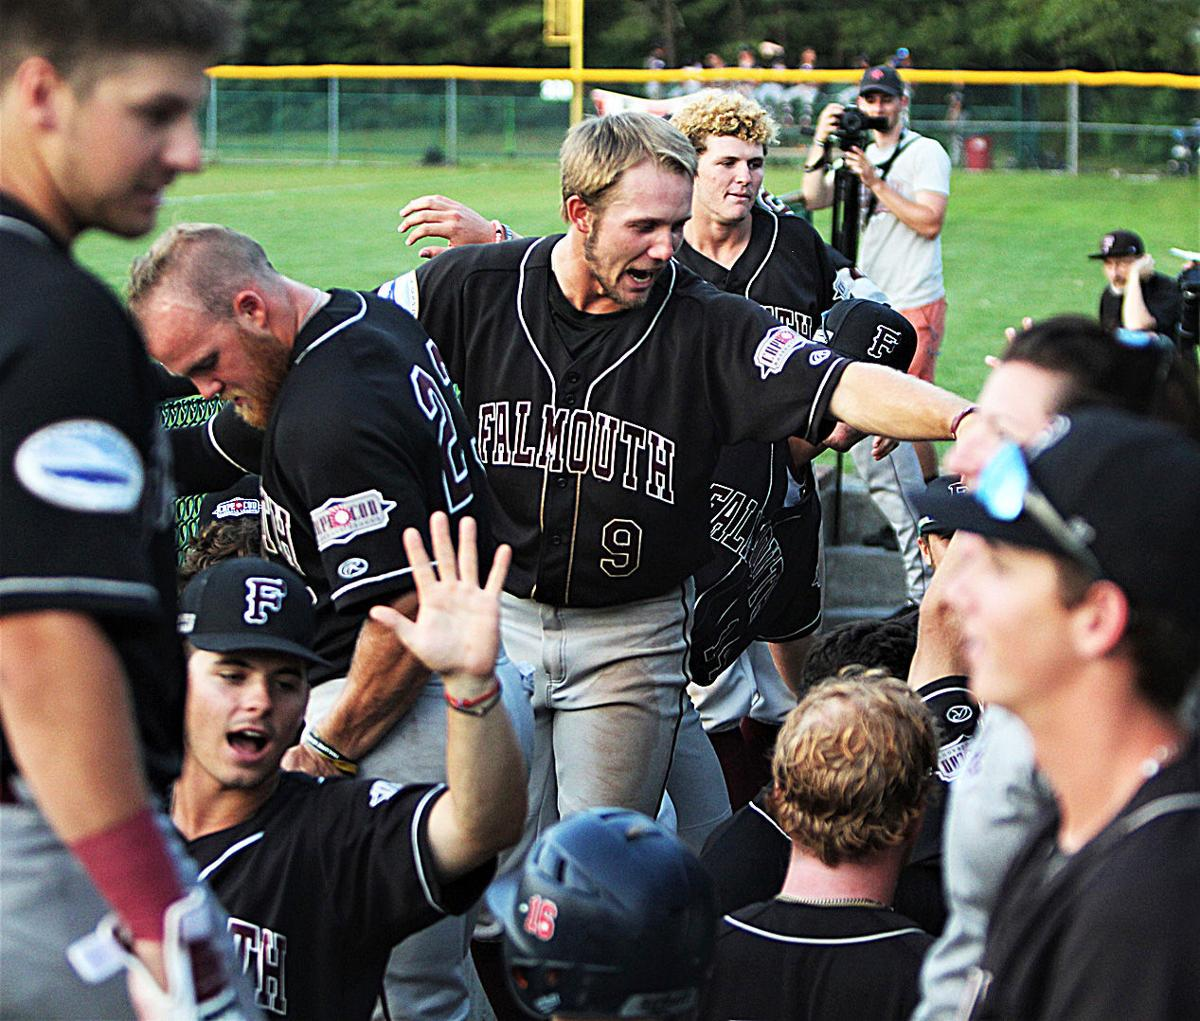 Falmouth Commodores vs Cotuit - July 30, 2019